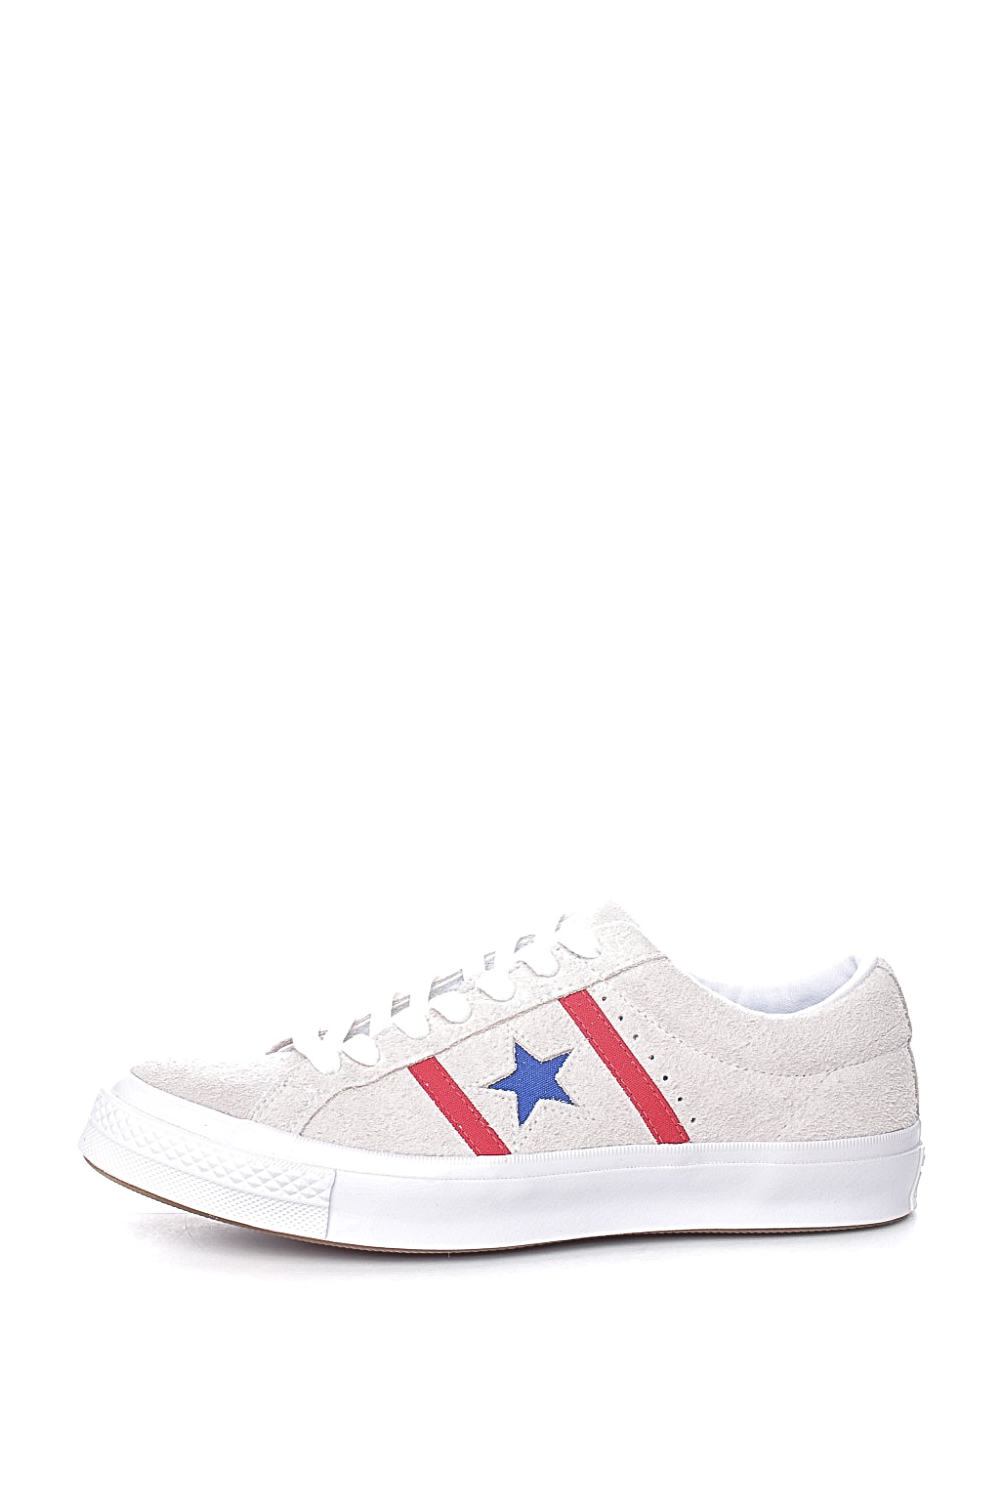 CONVERSE – Unisex sneakers CONVERSE One Star Academy γκρι